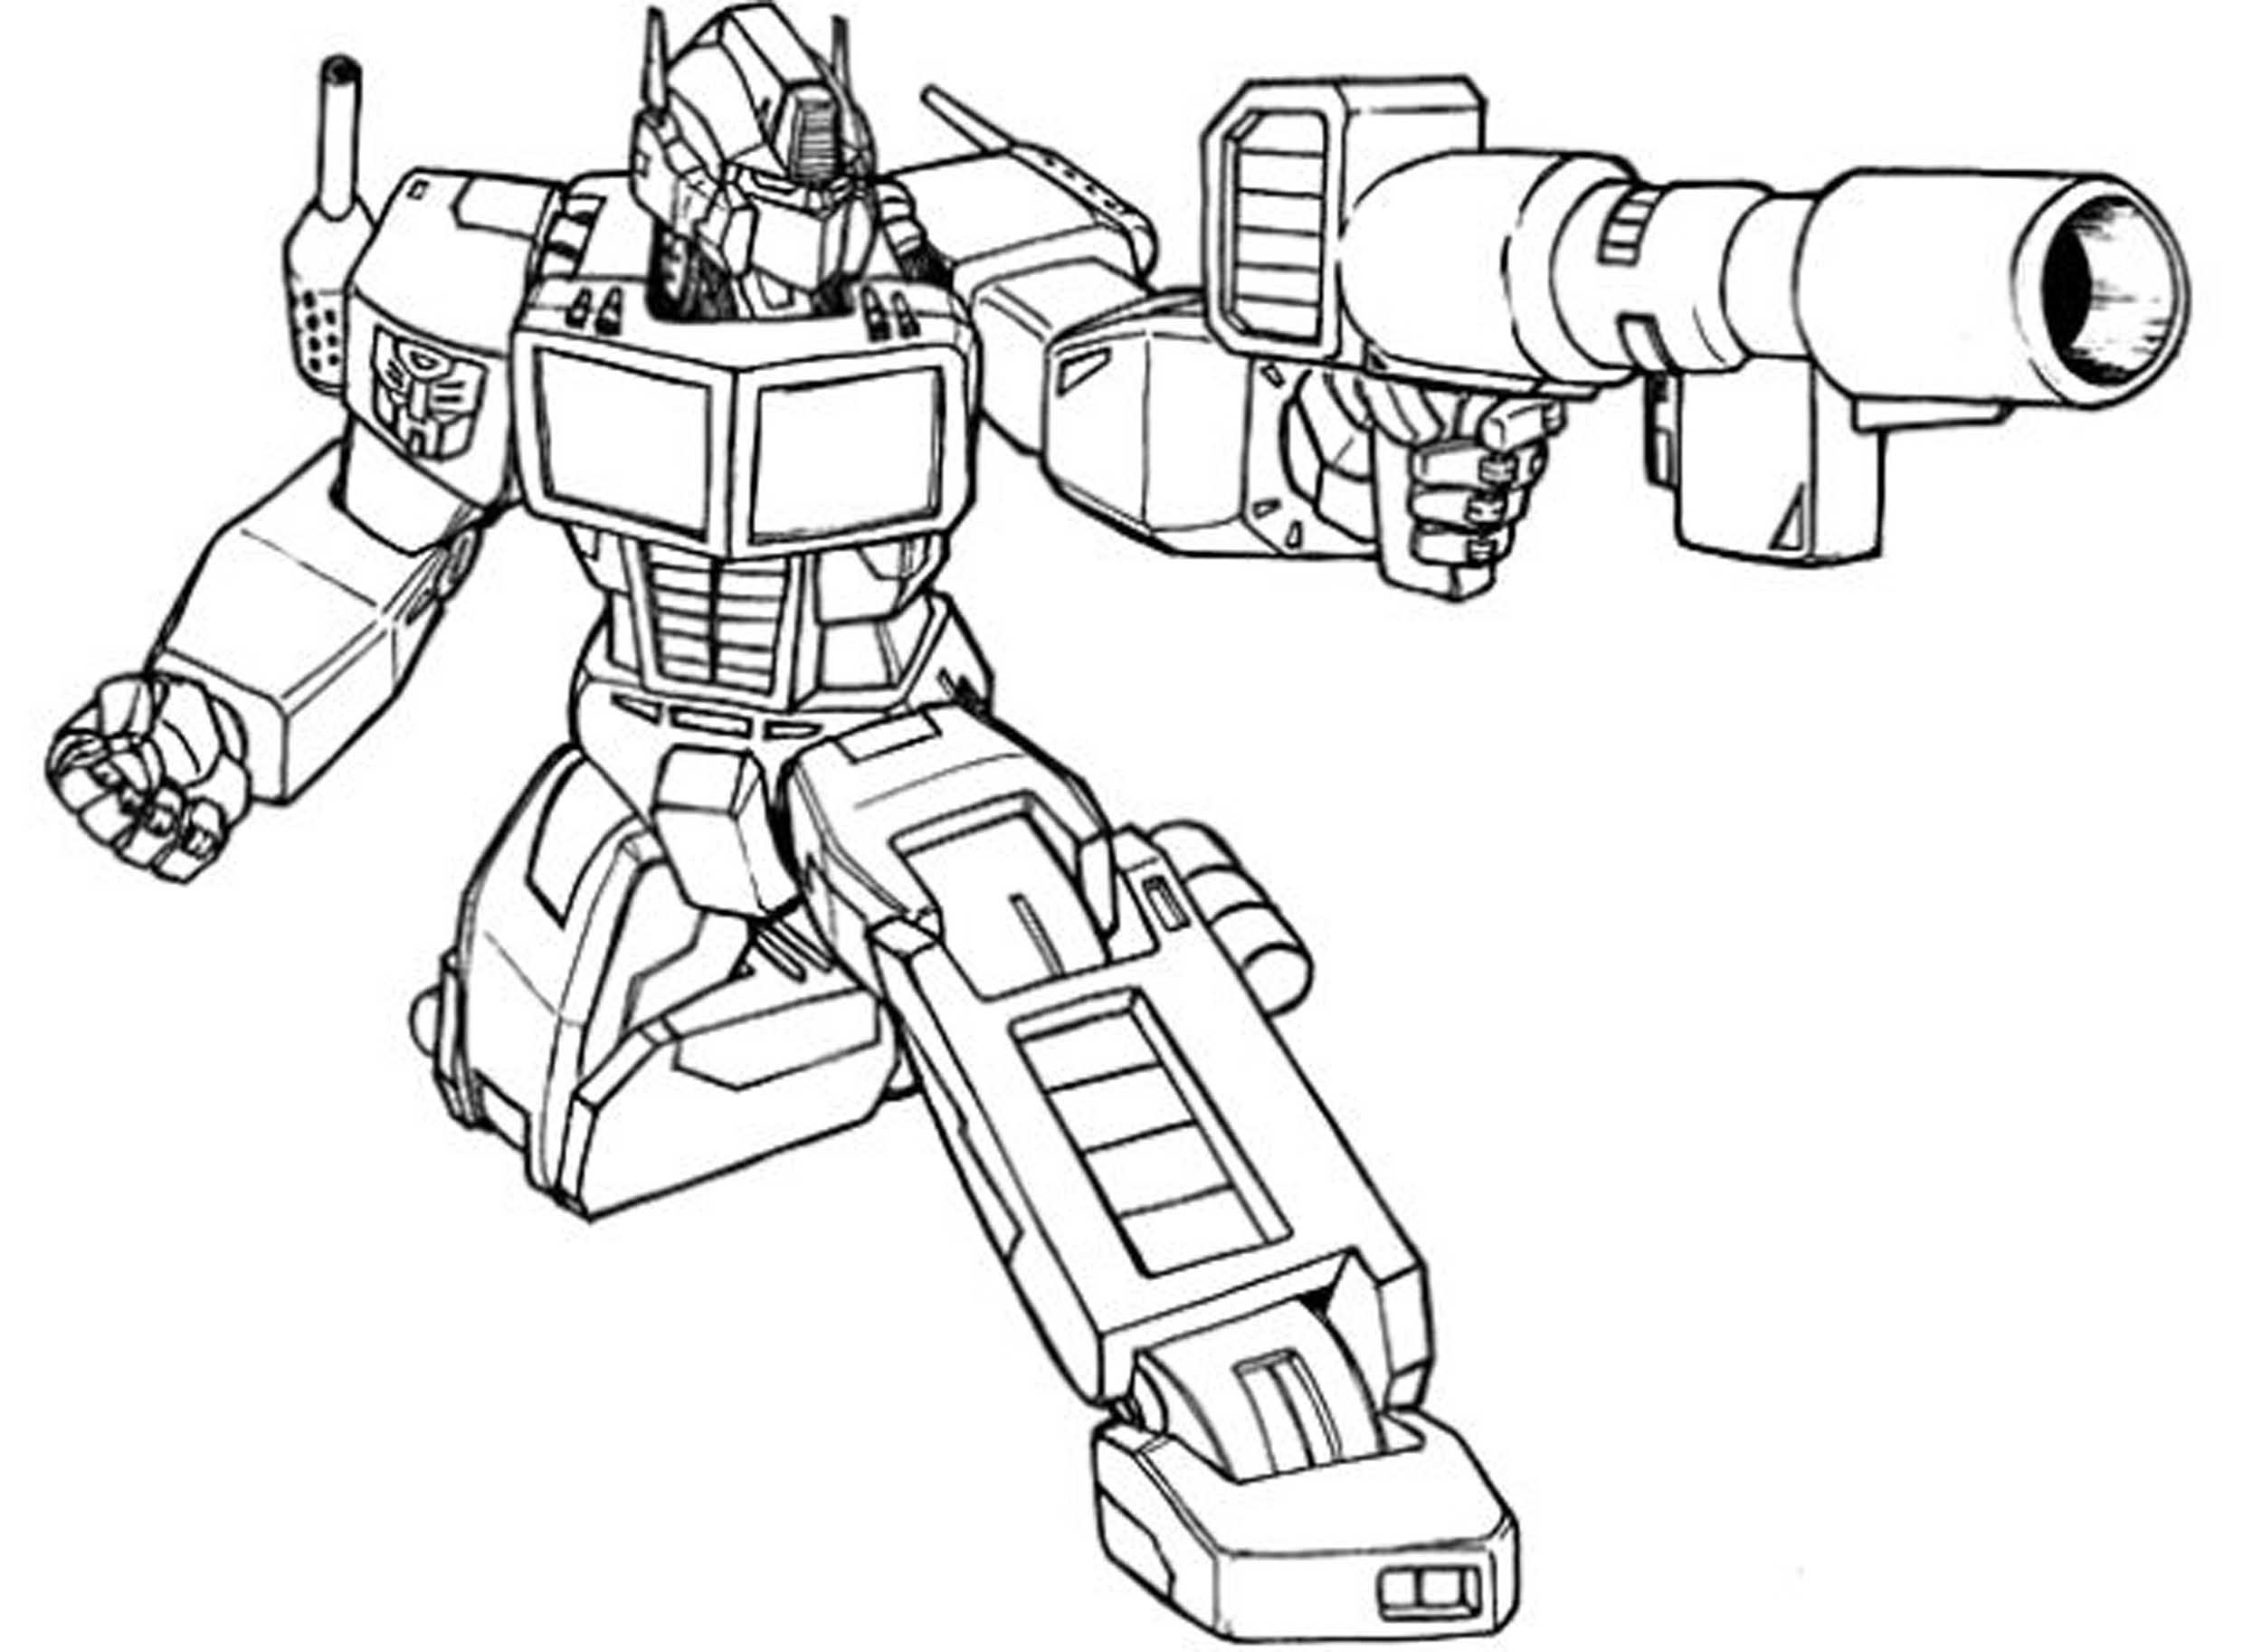 Bumblebee Transformer Coloring Page - Beautiful Bumblebee Transformer Coloring Page 29 About